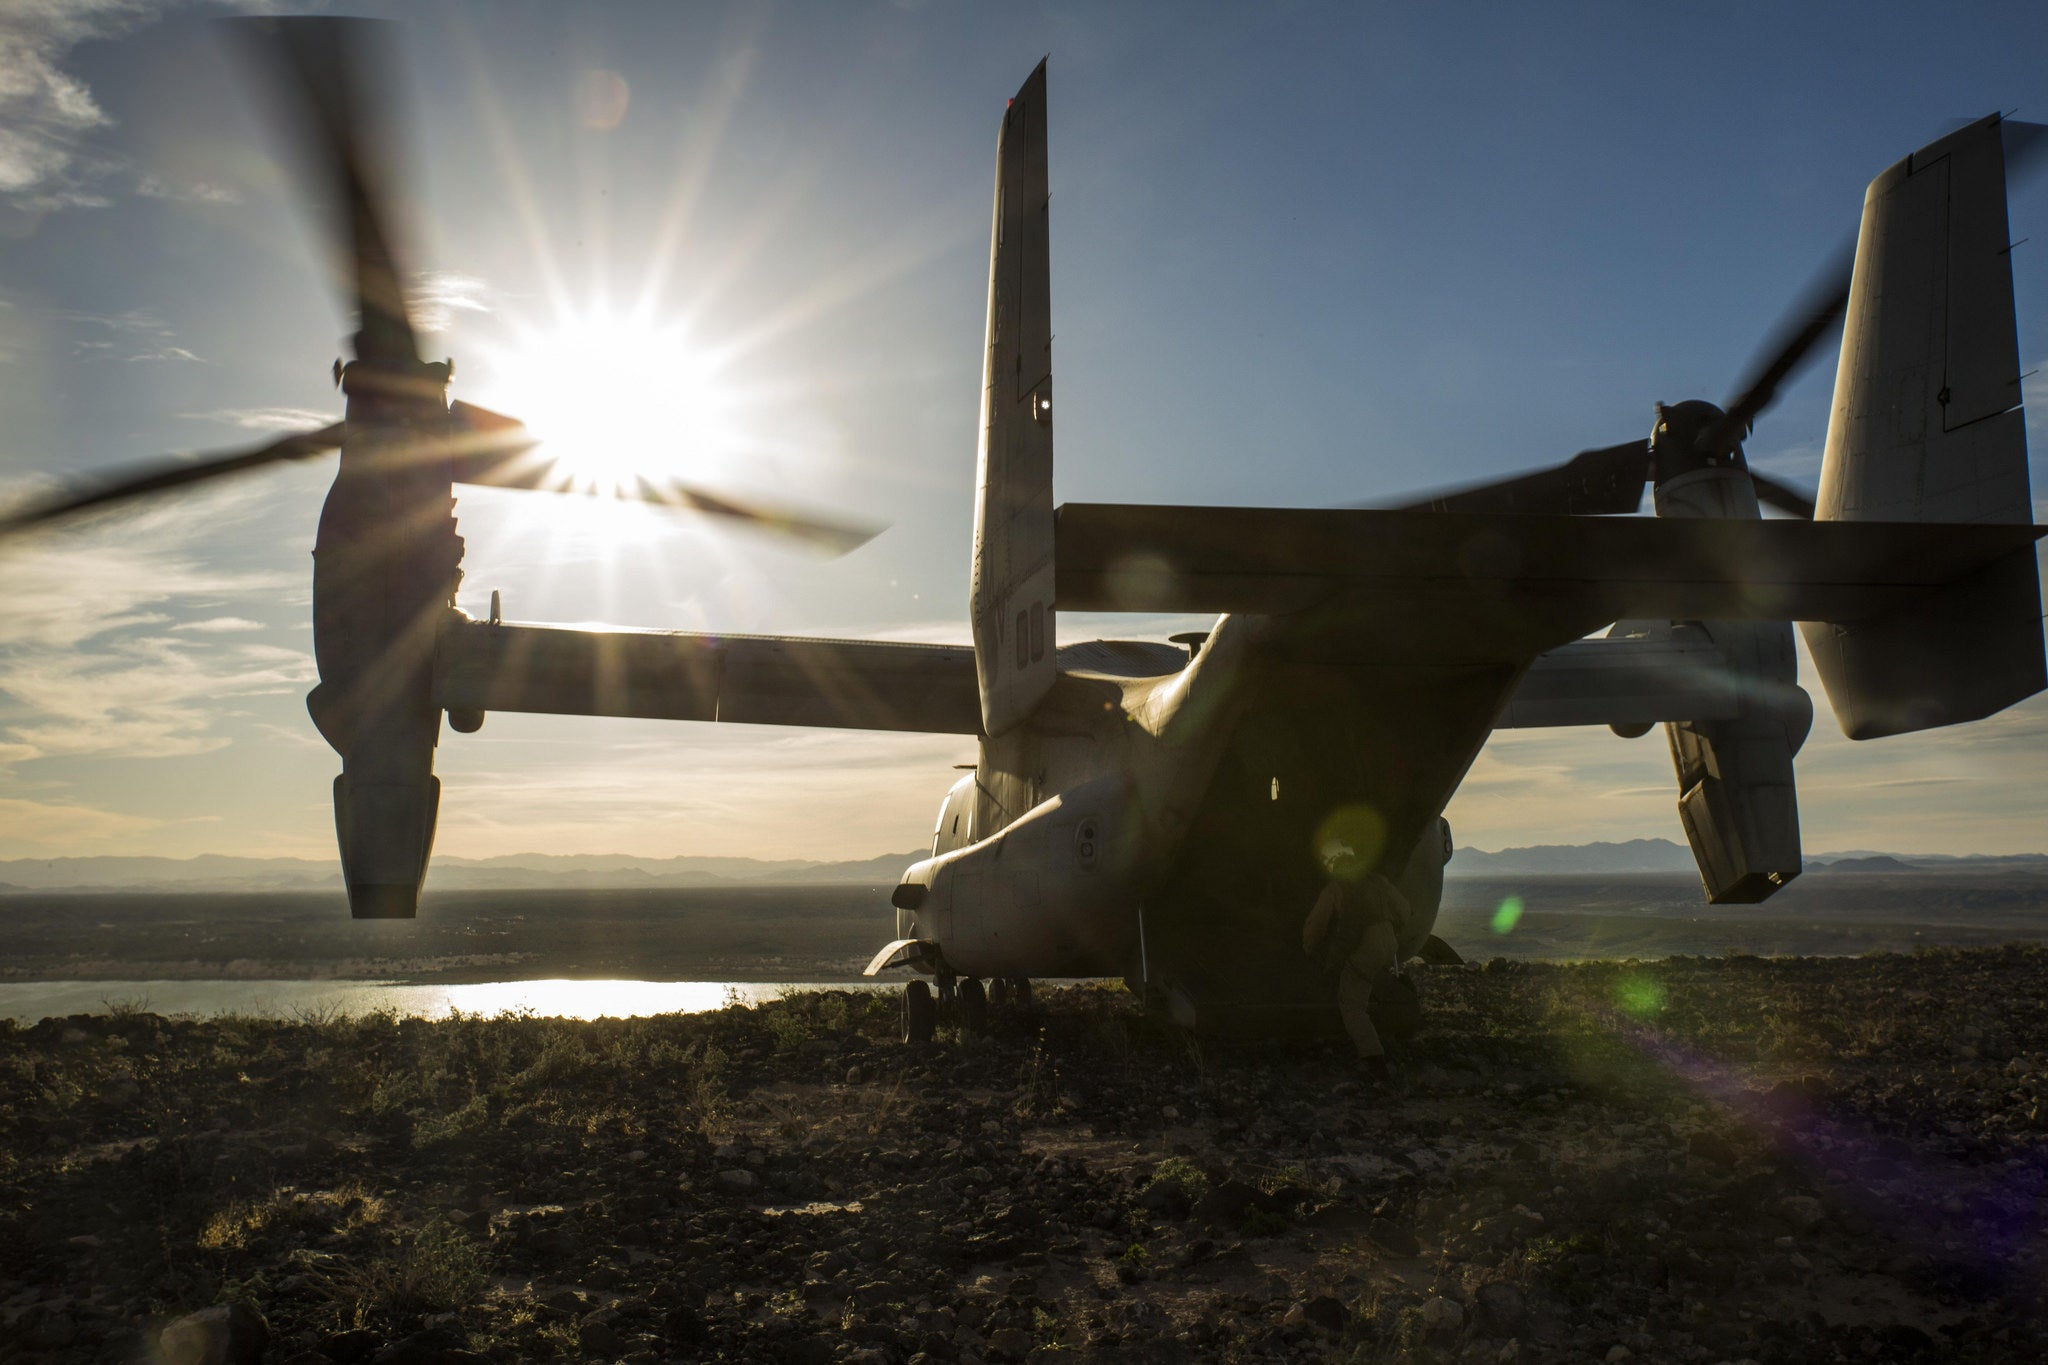 Peaceful Shot Of MV-22 Osprey Overlooking The Sun On Top A Mountain